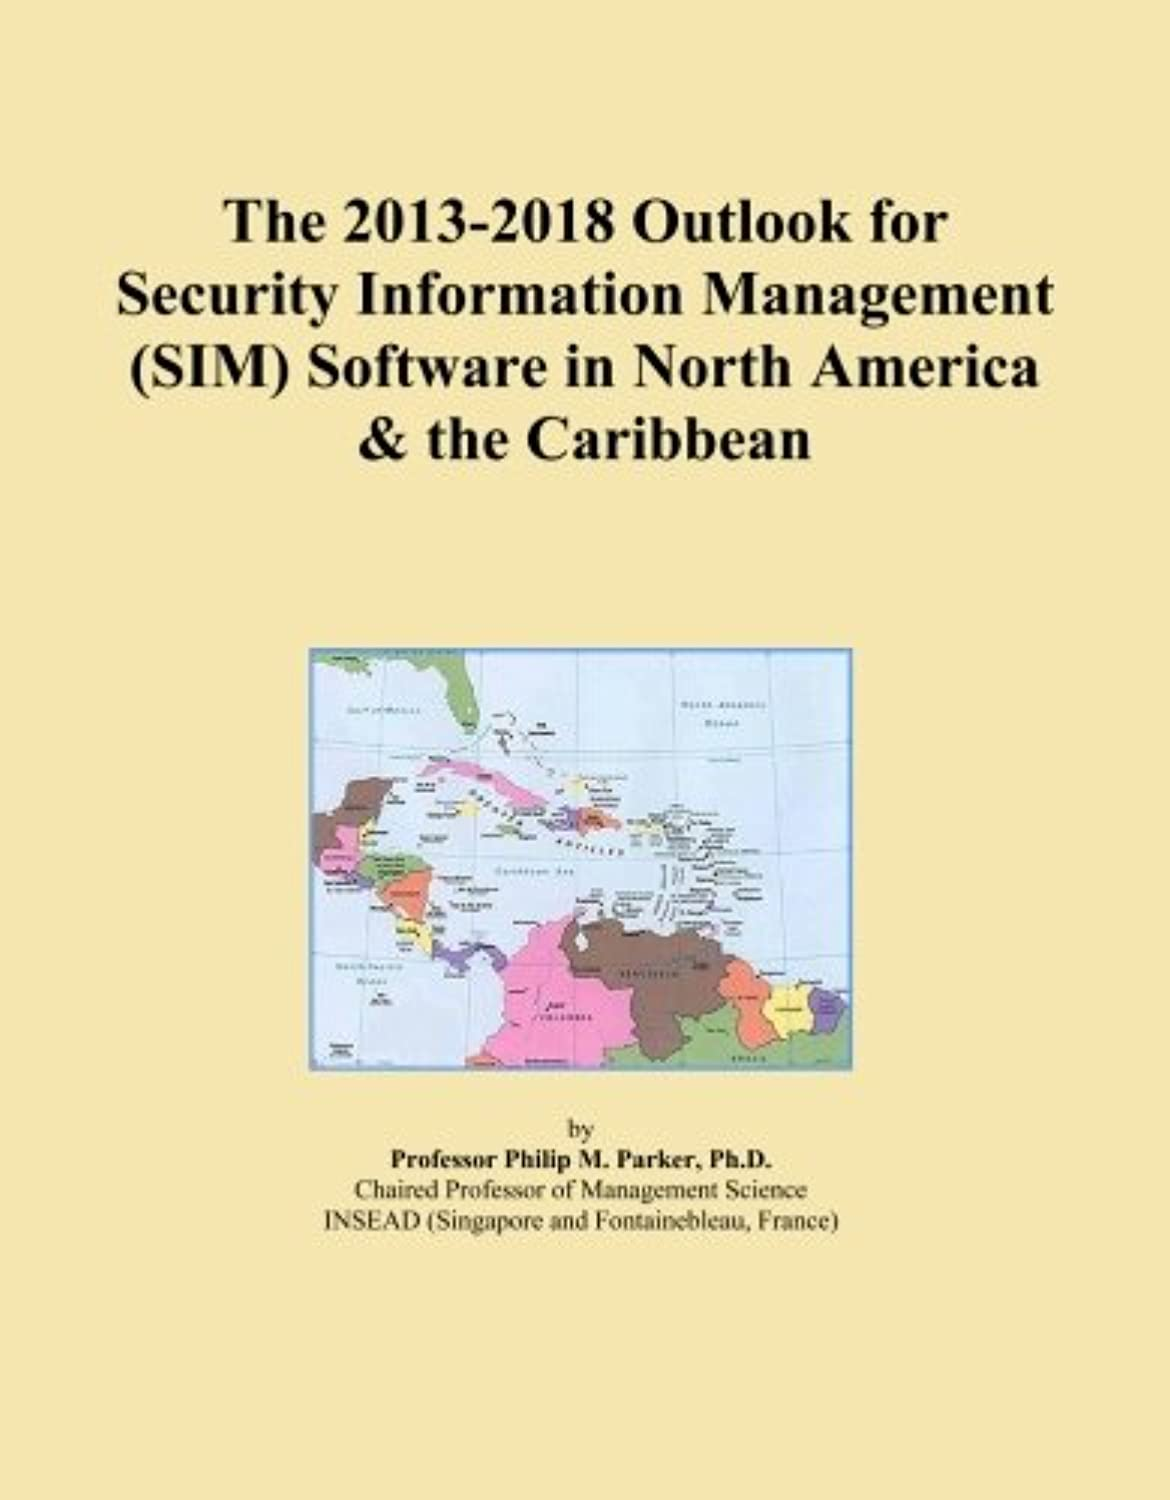 The 2013-2018 Outlook for Security Information Management (SIM) Software in North America & the Caribbean